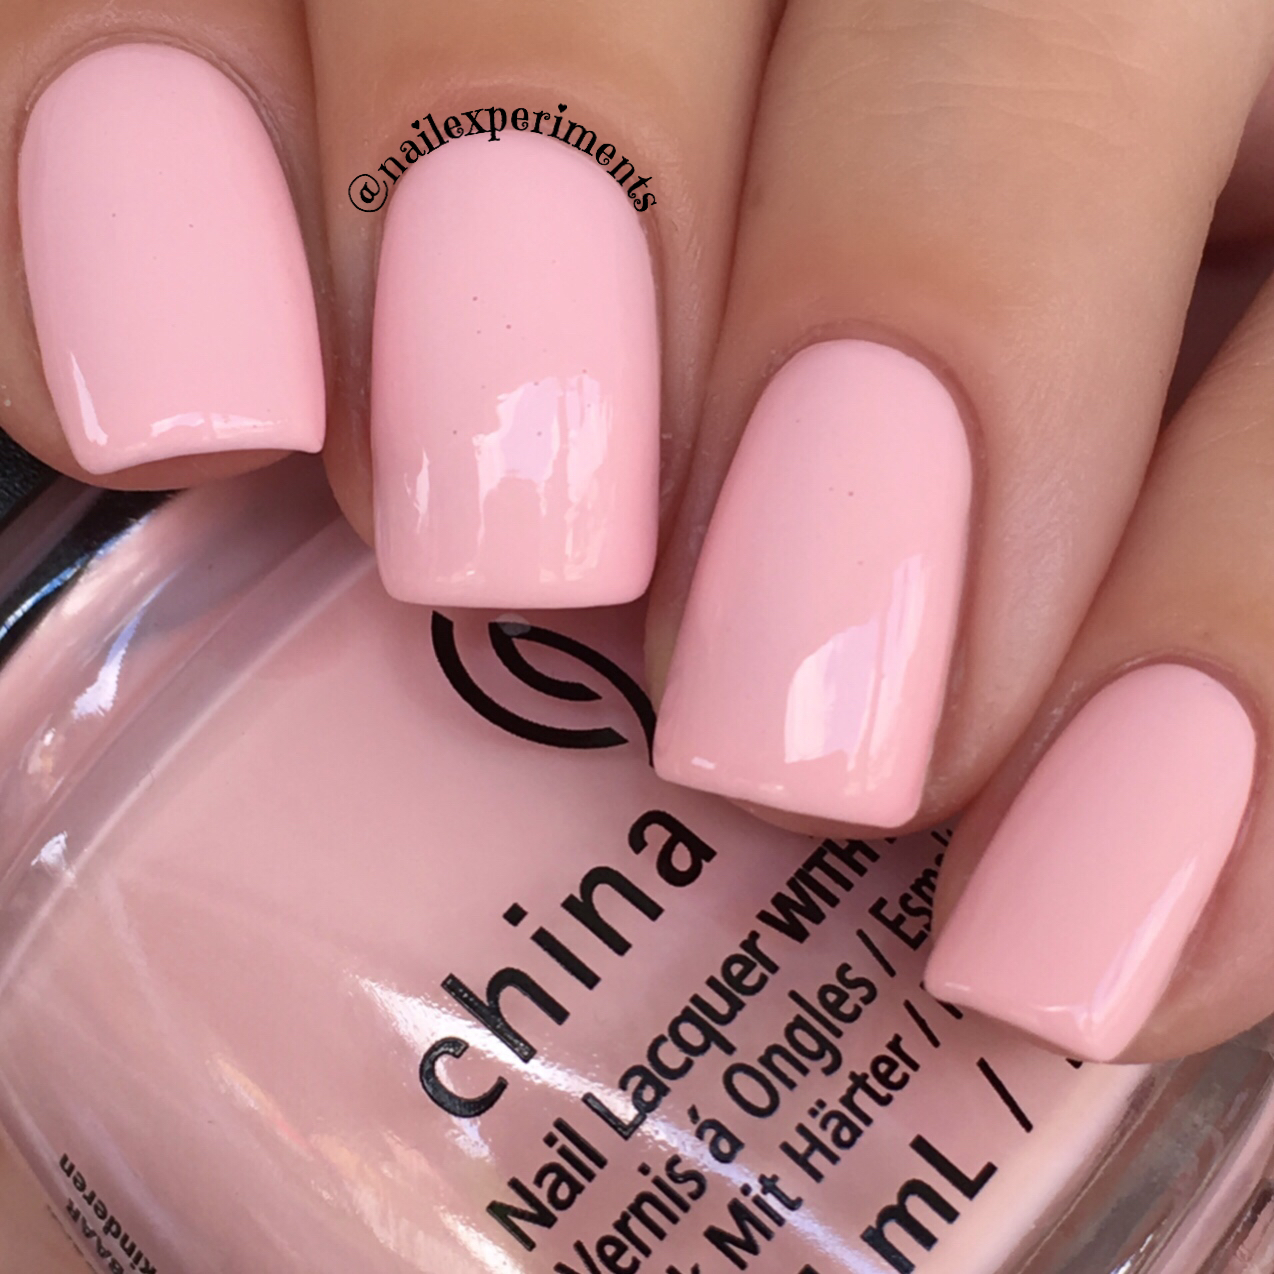 China glaze my sweet lady swatch